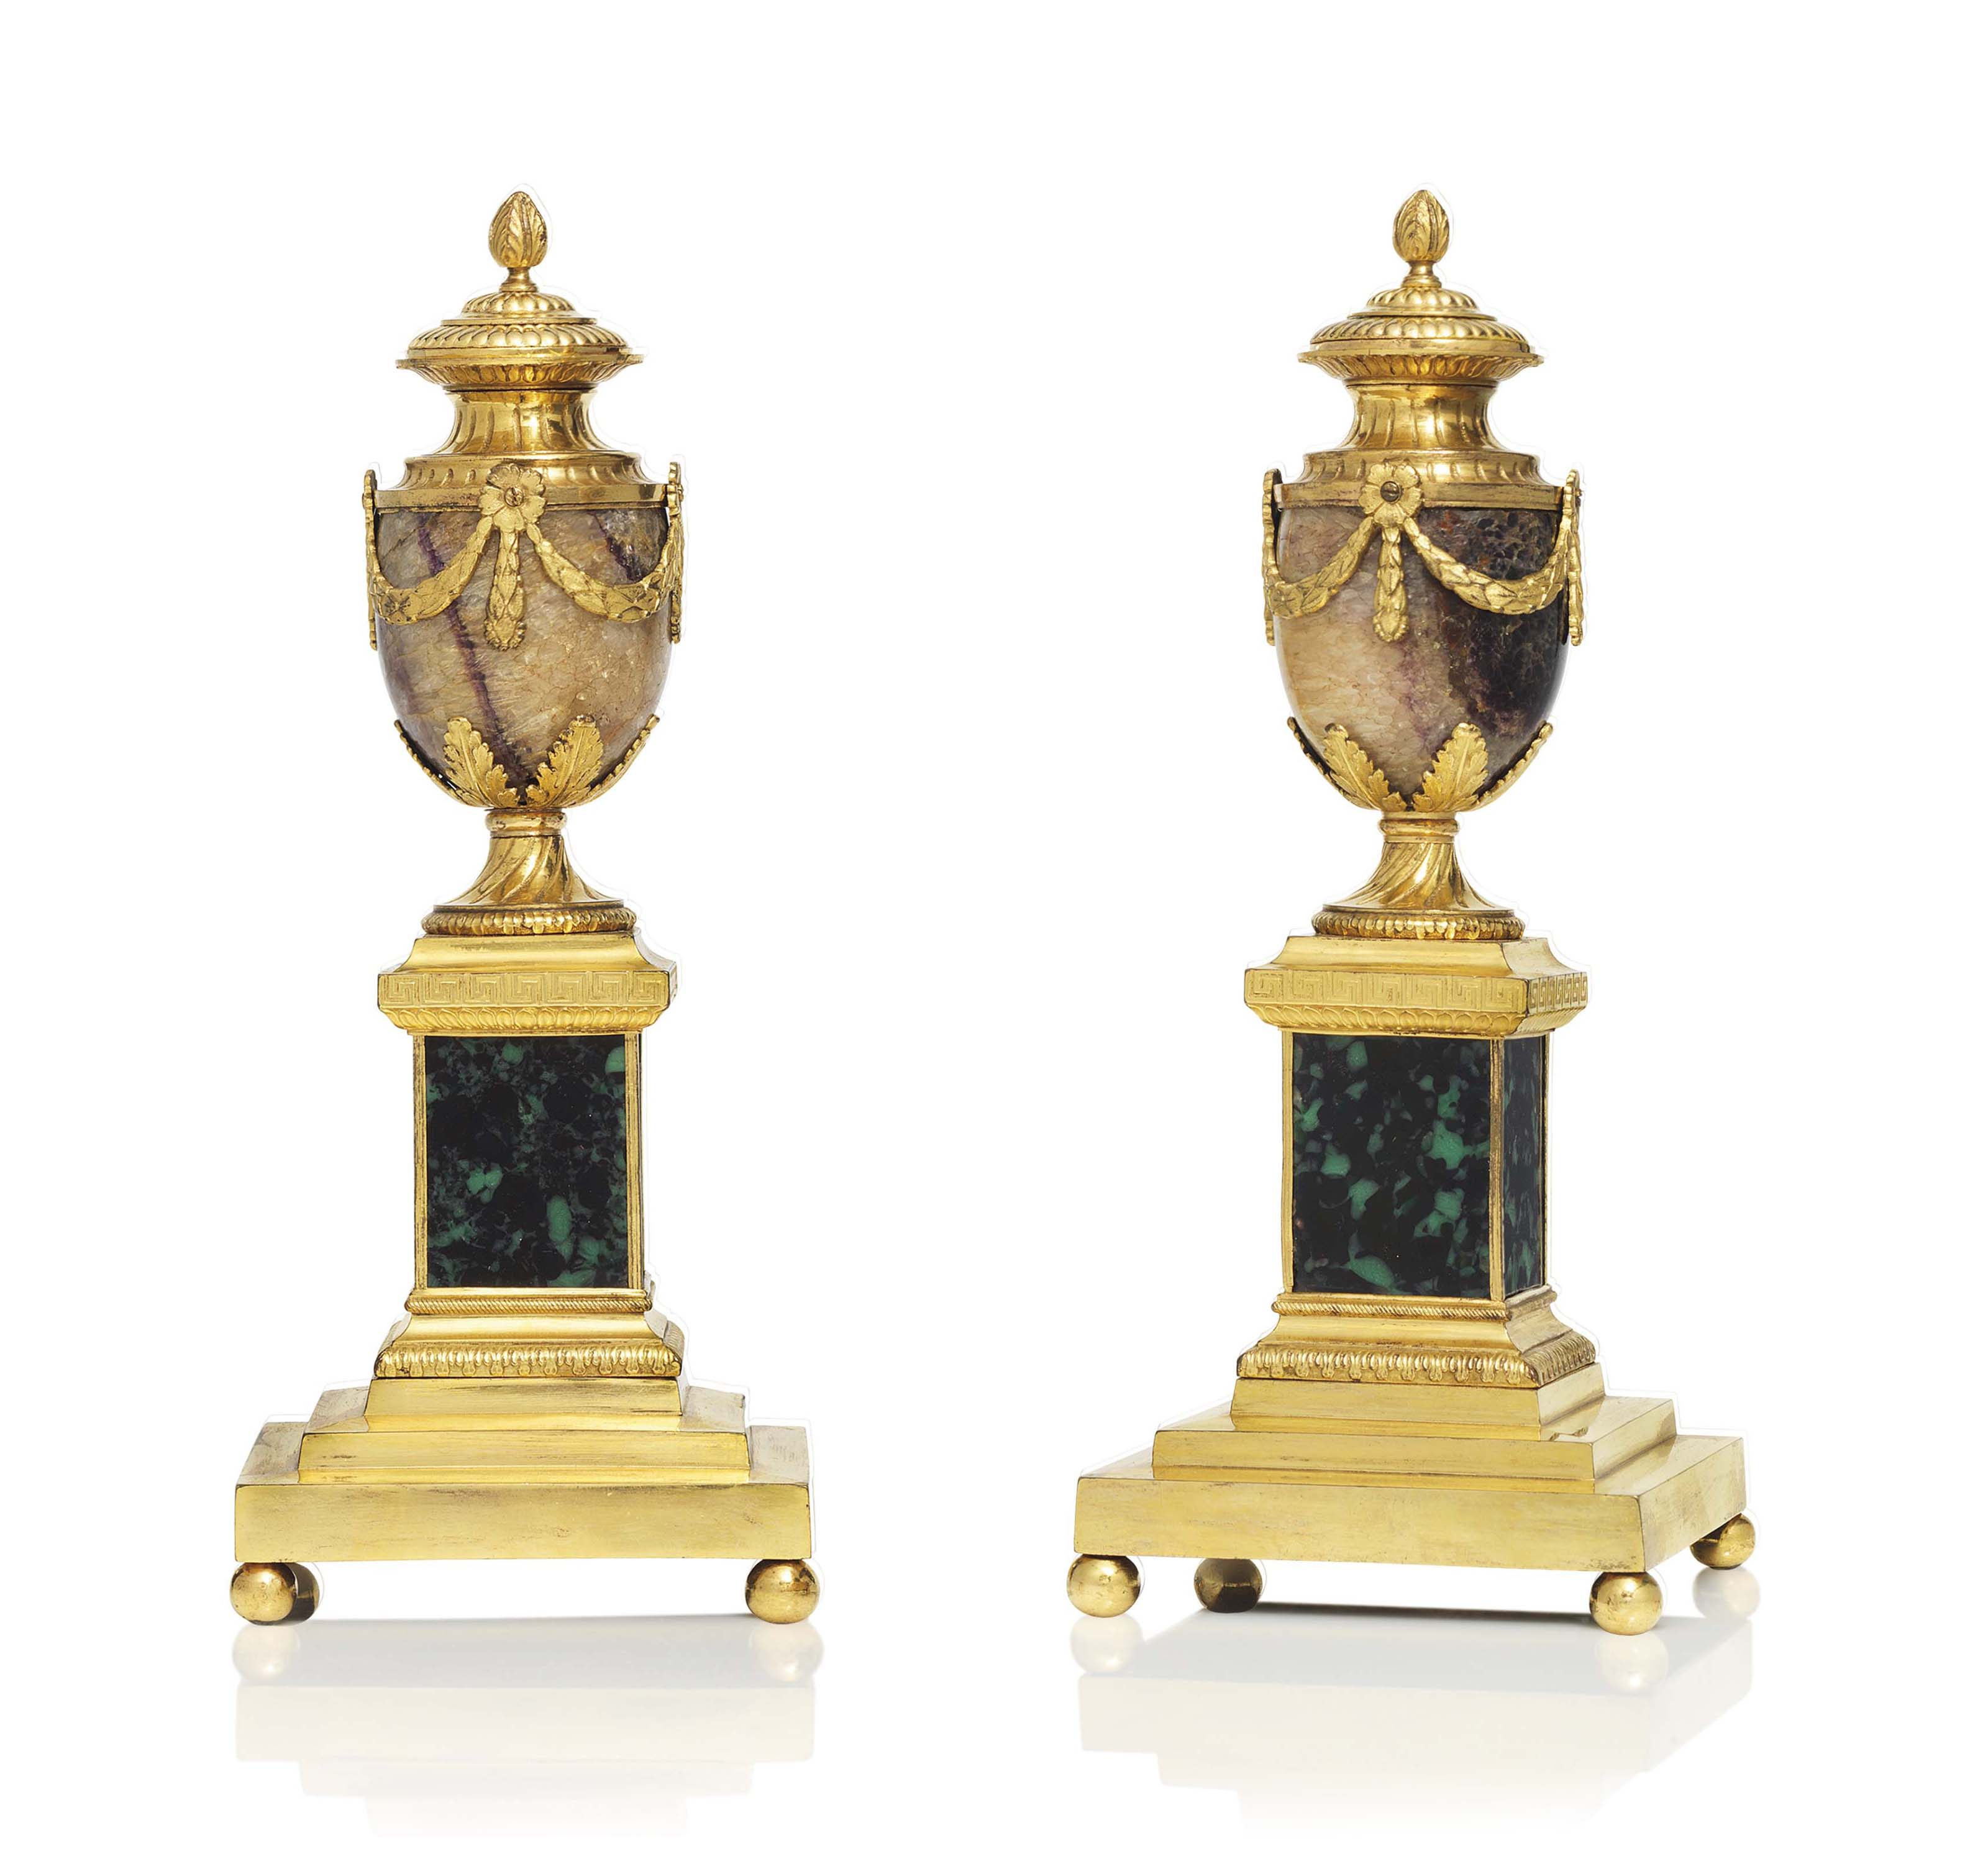 A PAIR OF GEORGE III ORMOLU-MOUNTED BLUE JOHN AND SIMULATED MALACHITE 'CLEOPATRA' VASES